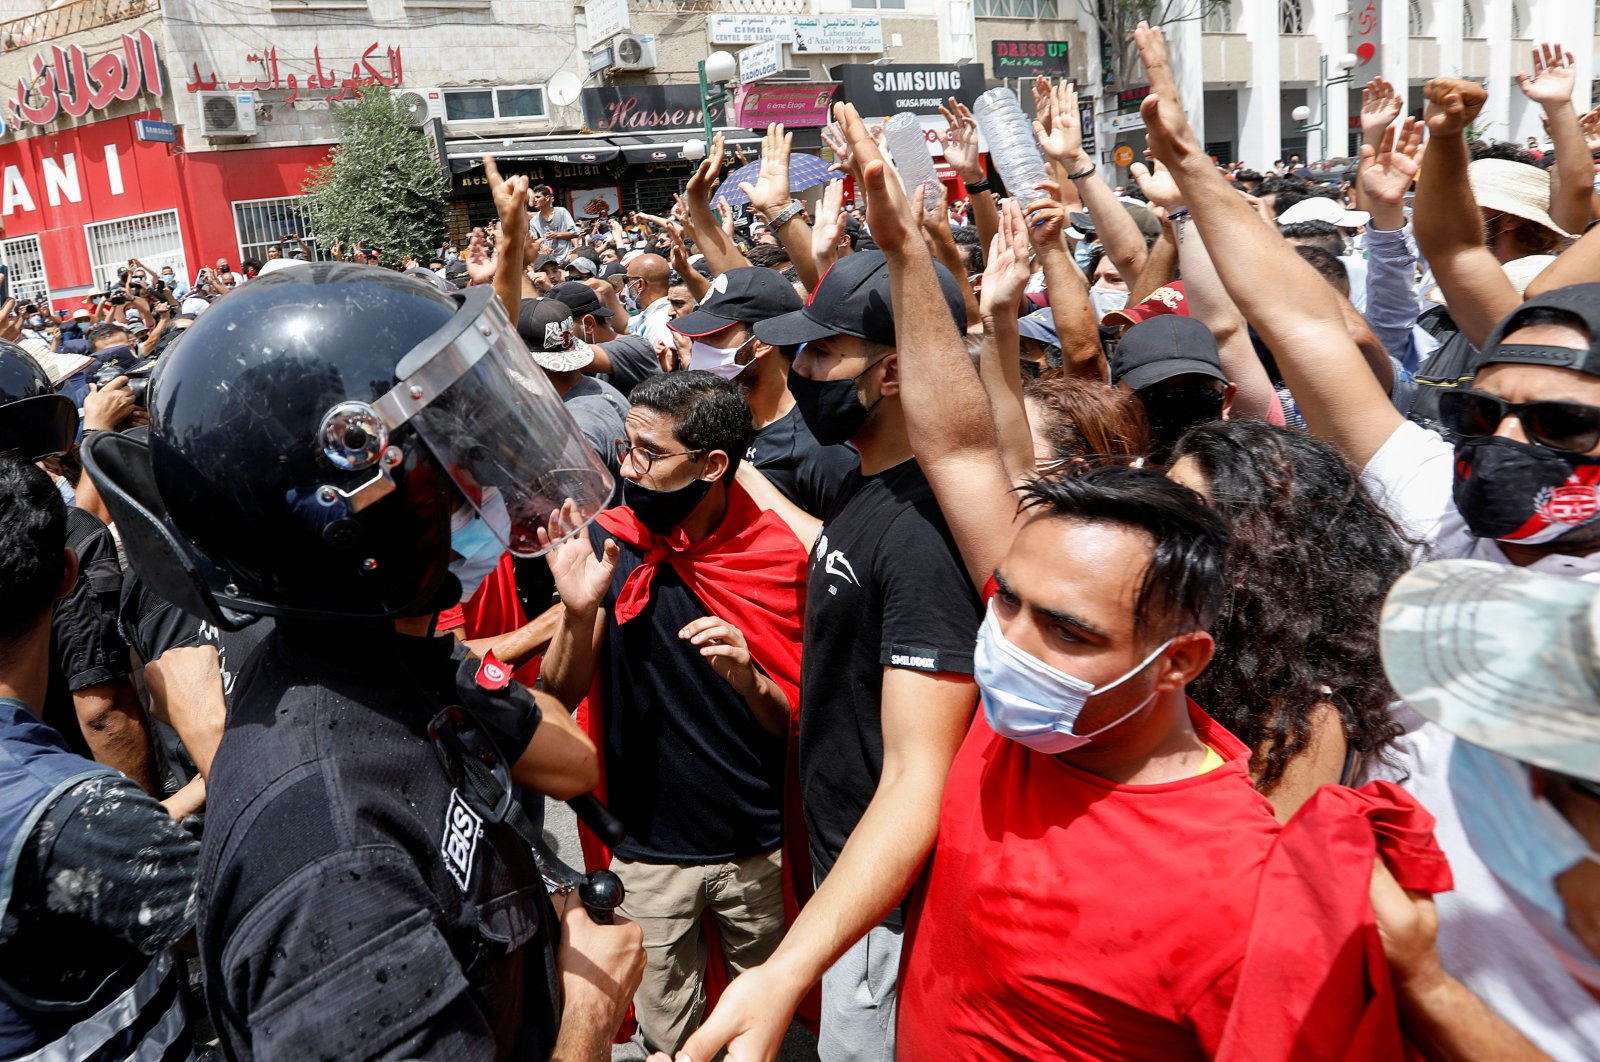 Demonstrators gather in front of police officers standing guard during an anti-government protest in Tunis, Tunisia, July 25, 2021. (Reuters Photo)